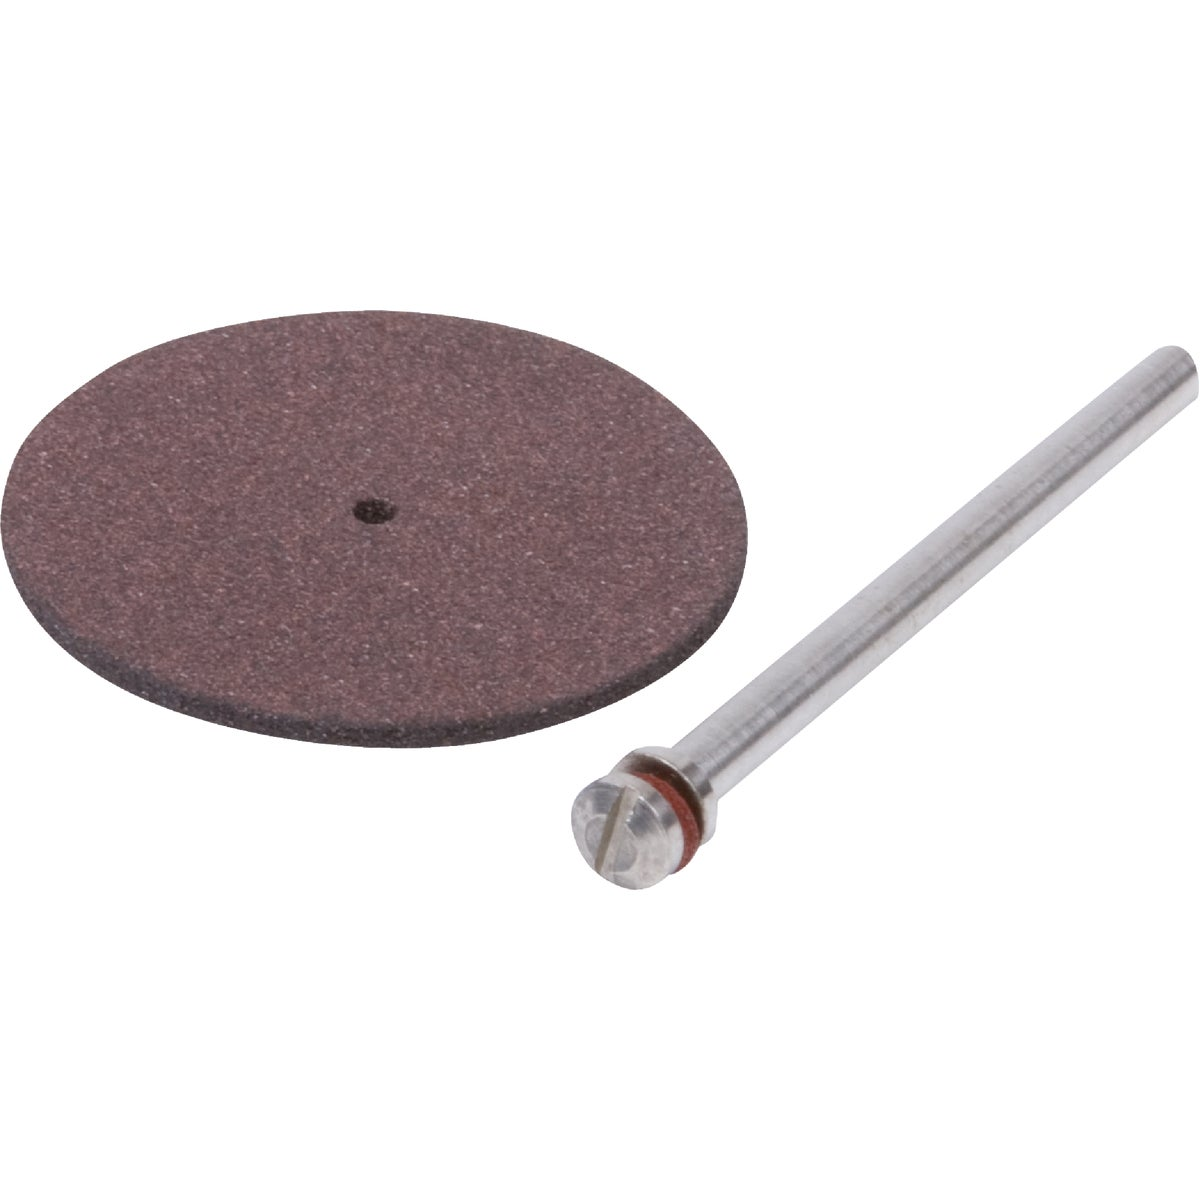 CUT-OFF WHEEL KIT - 60222 by Forney Industries